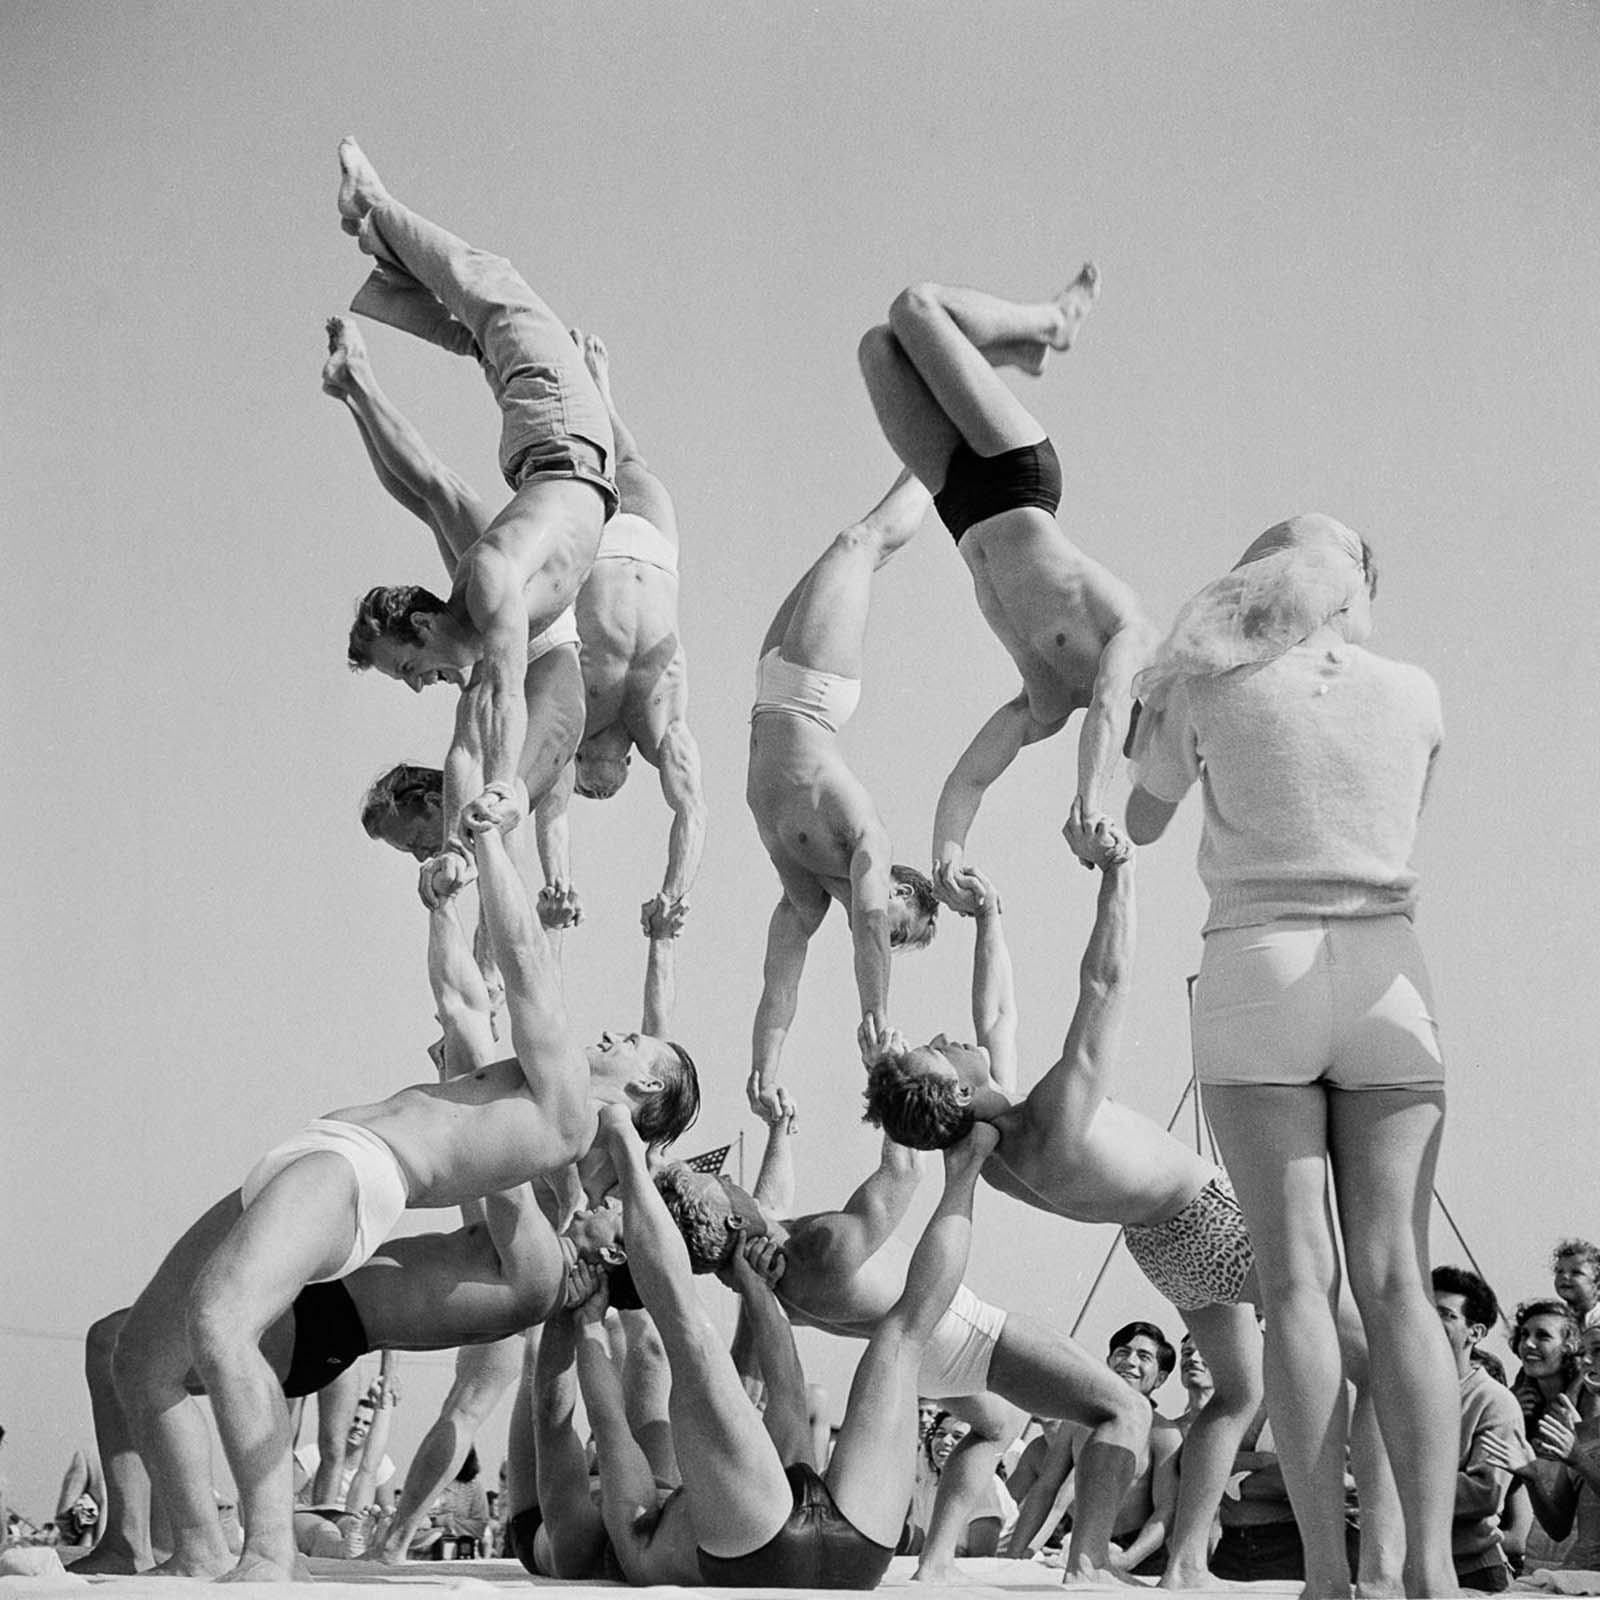 The weight benches, parallel bars and gymnastics rings soon became a magnet for athletes, acrobats and famous bodybuilders.